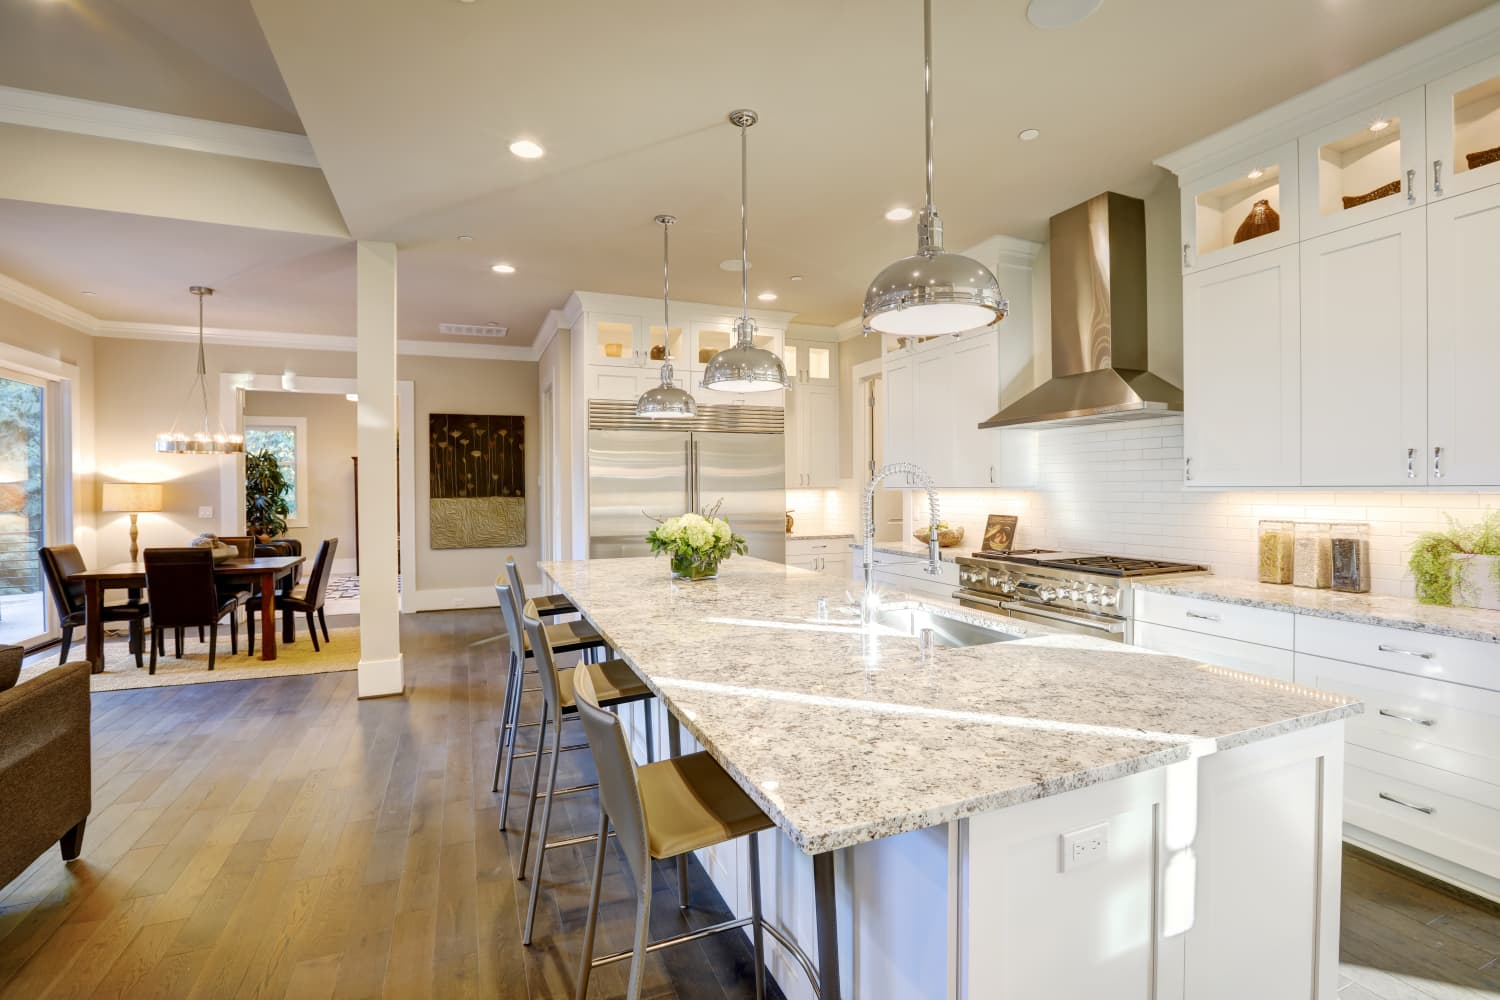 5 Easy Ways to Section Off That Open-Concept Floor Plan You Hate So Much